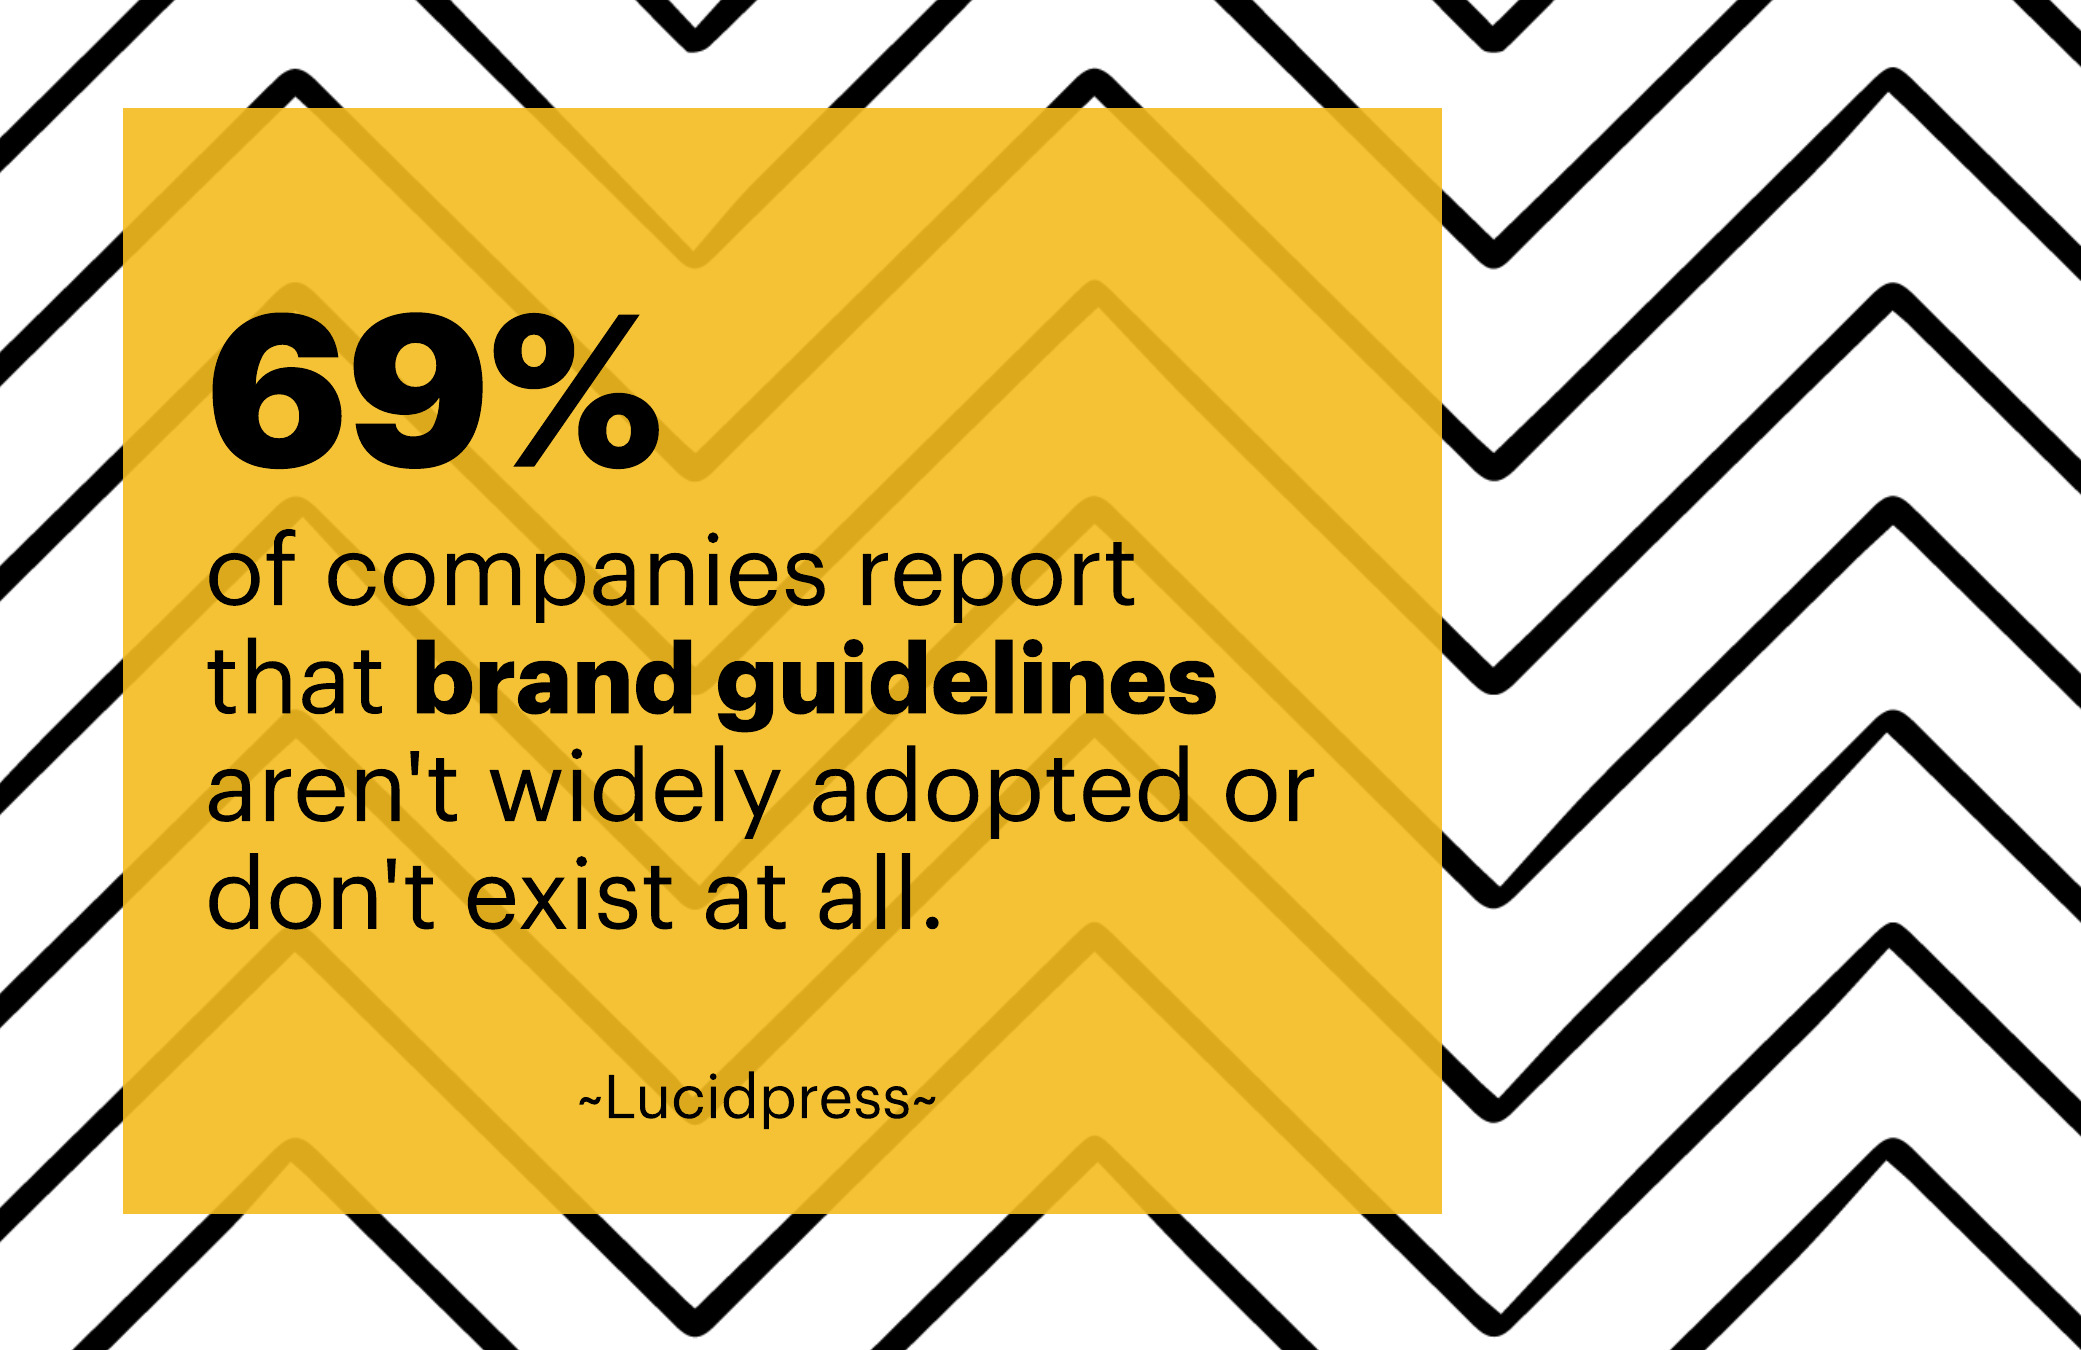 69% of companies report that brand guidelines aren't widely adopted or don't exist at all